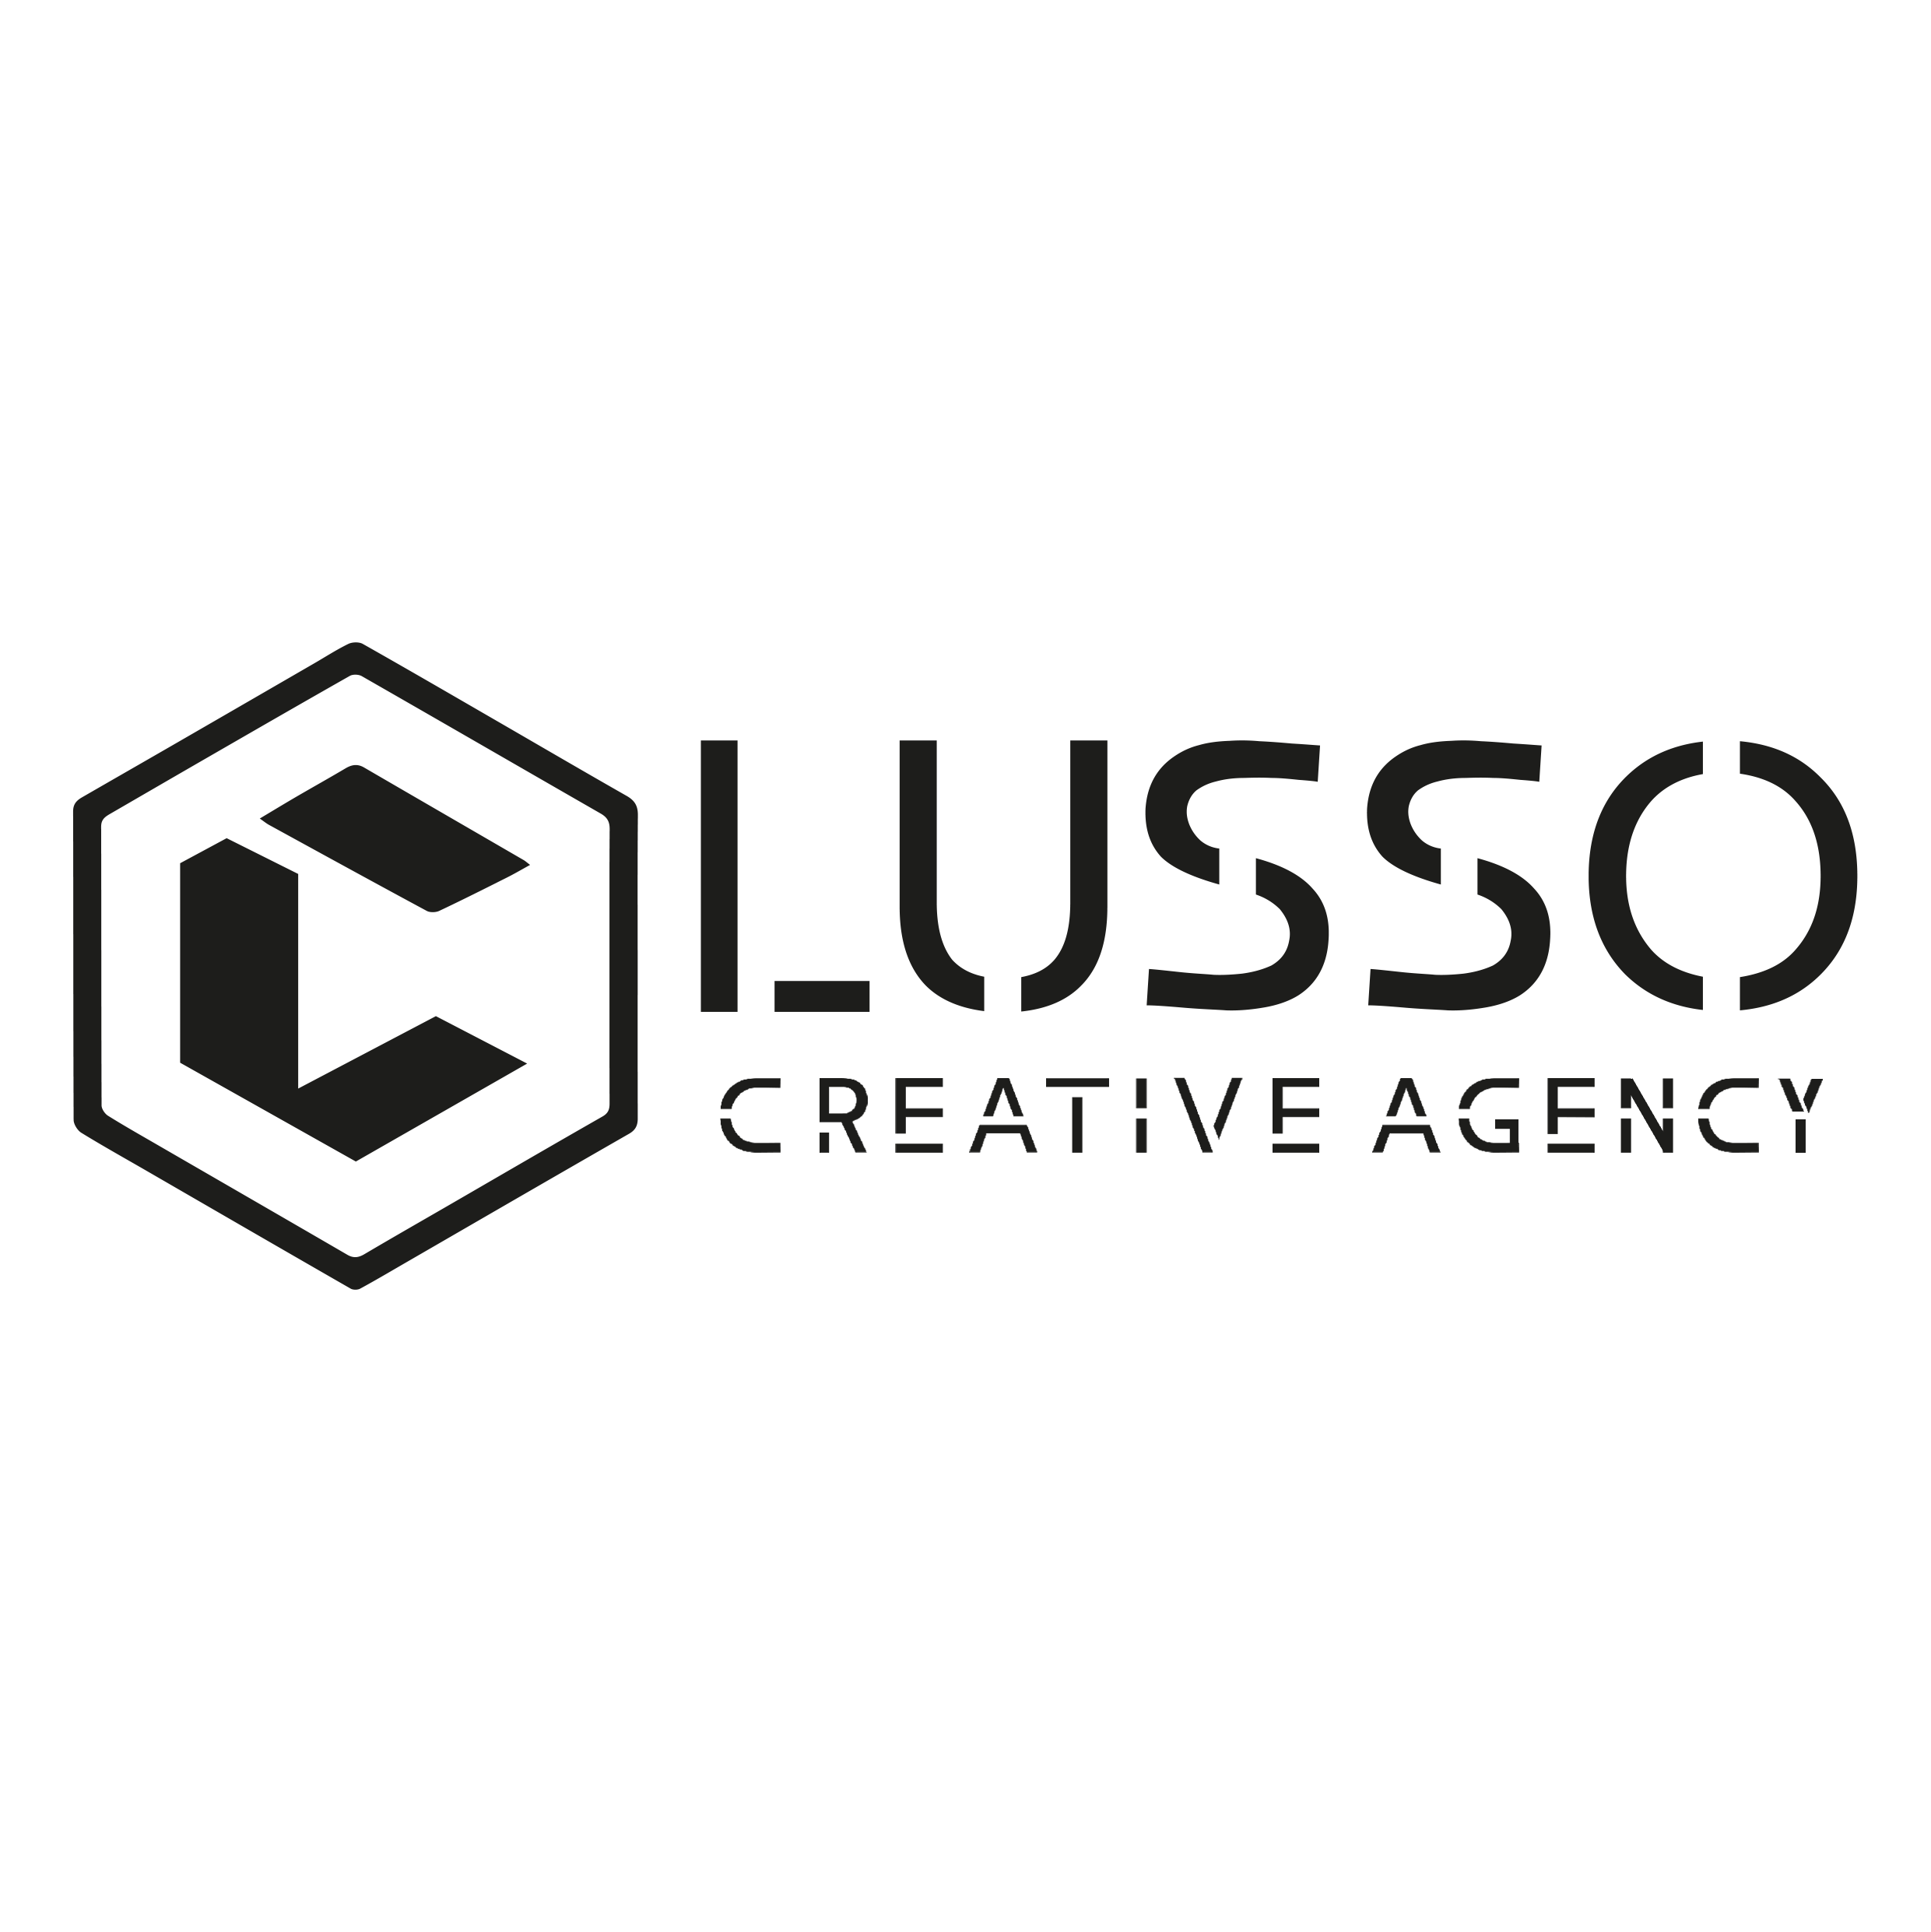 Lusso Creative Agency